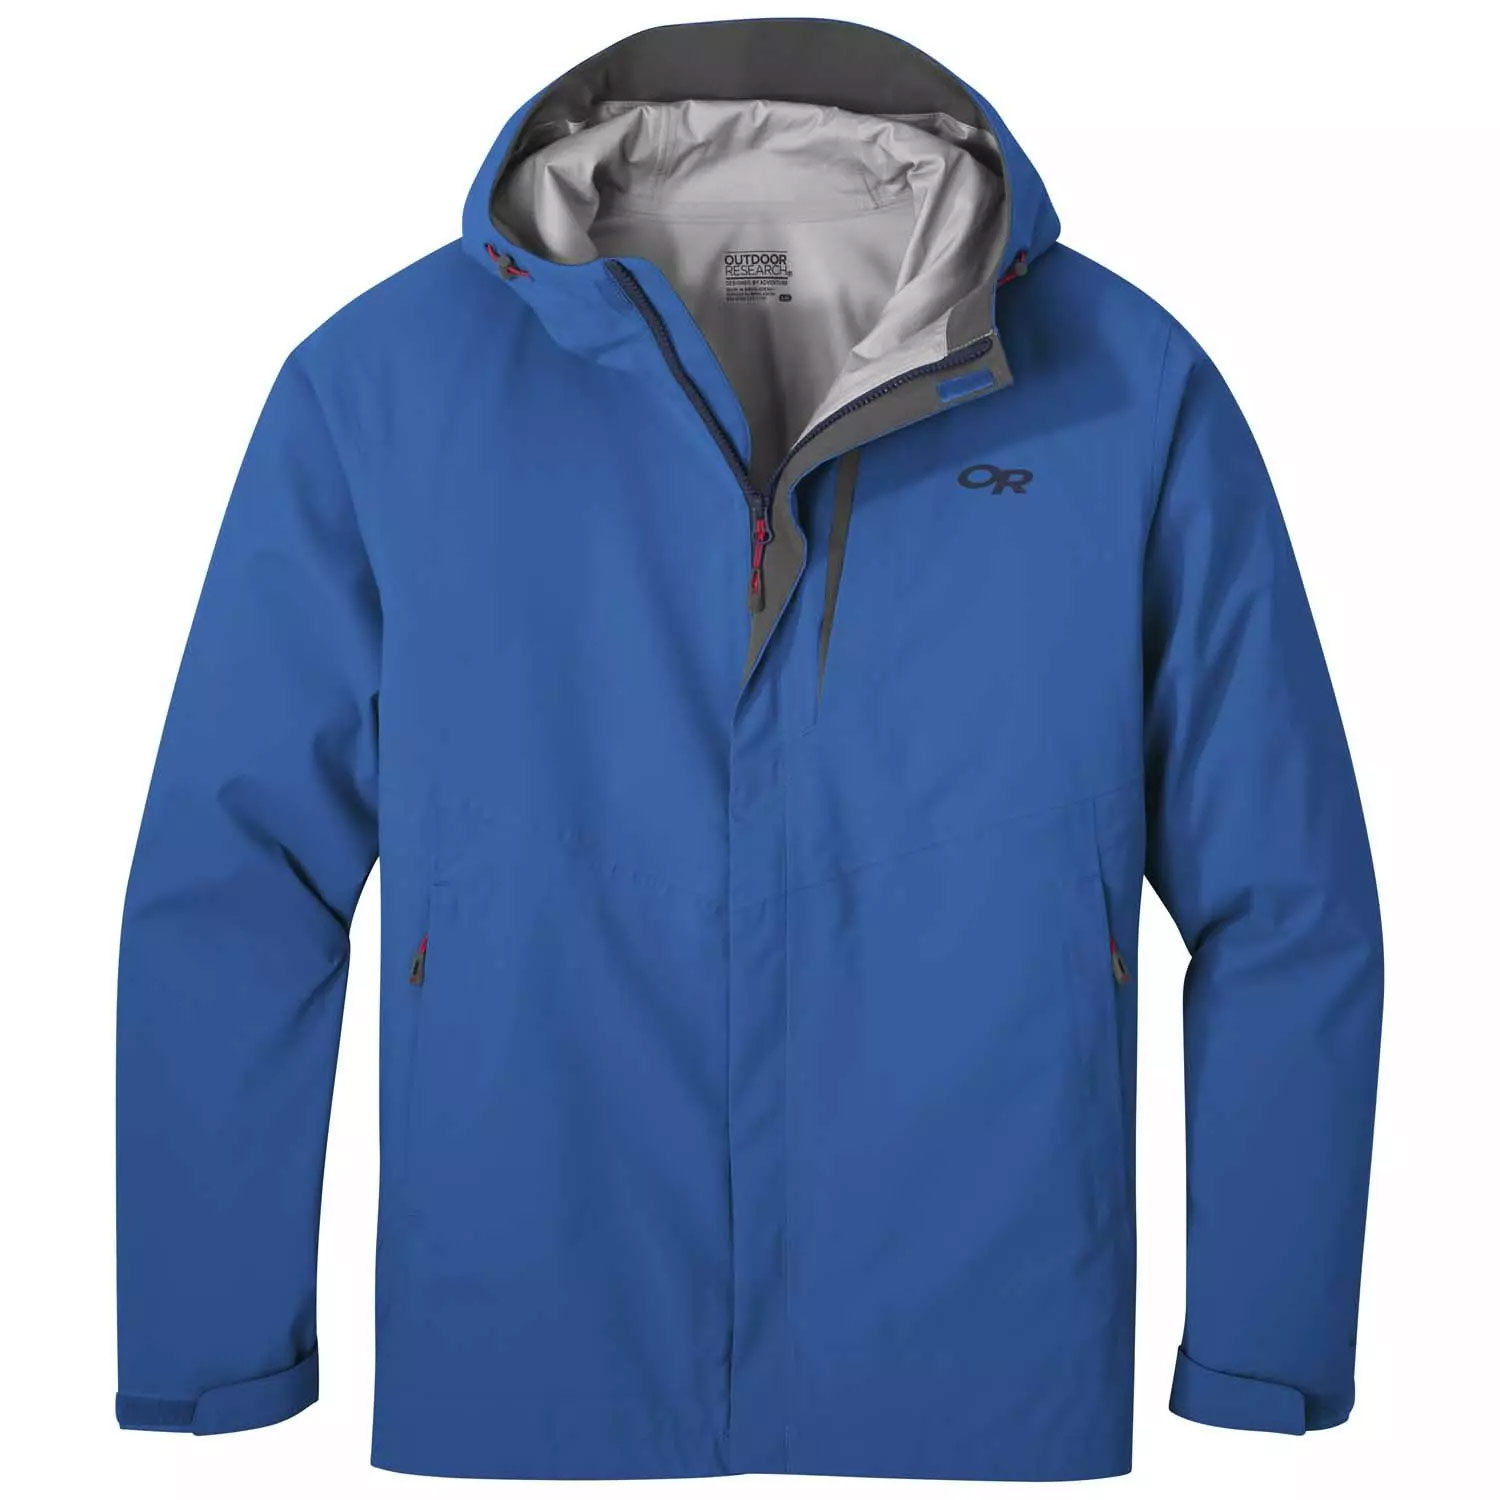 Guardian 2 Jacket - Men's